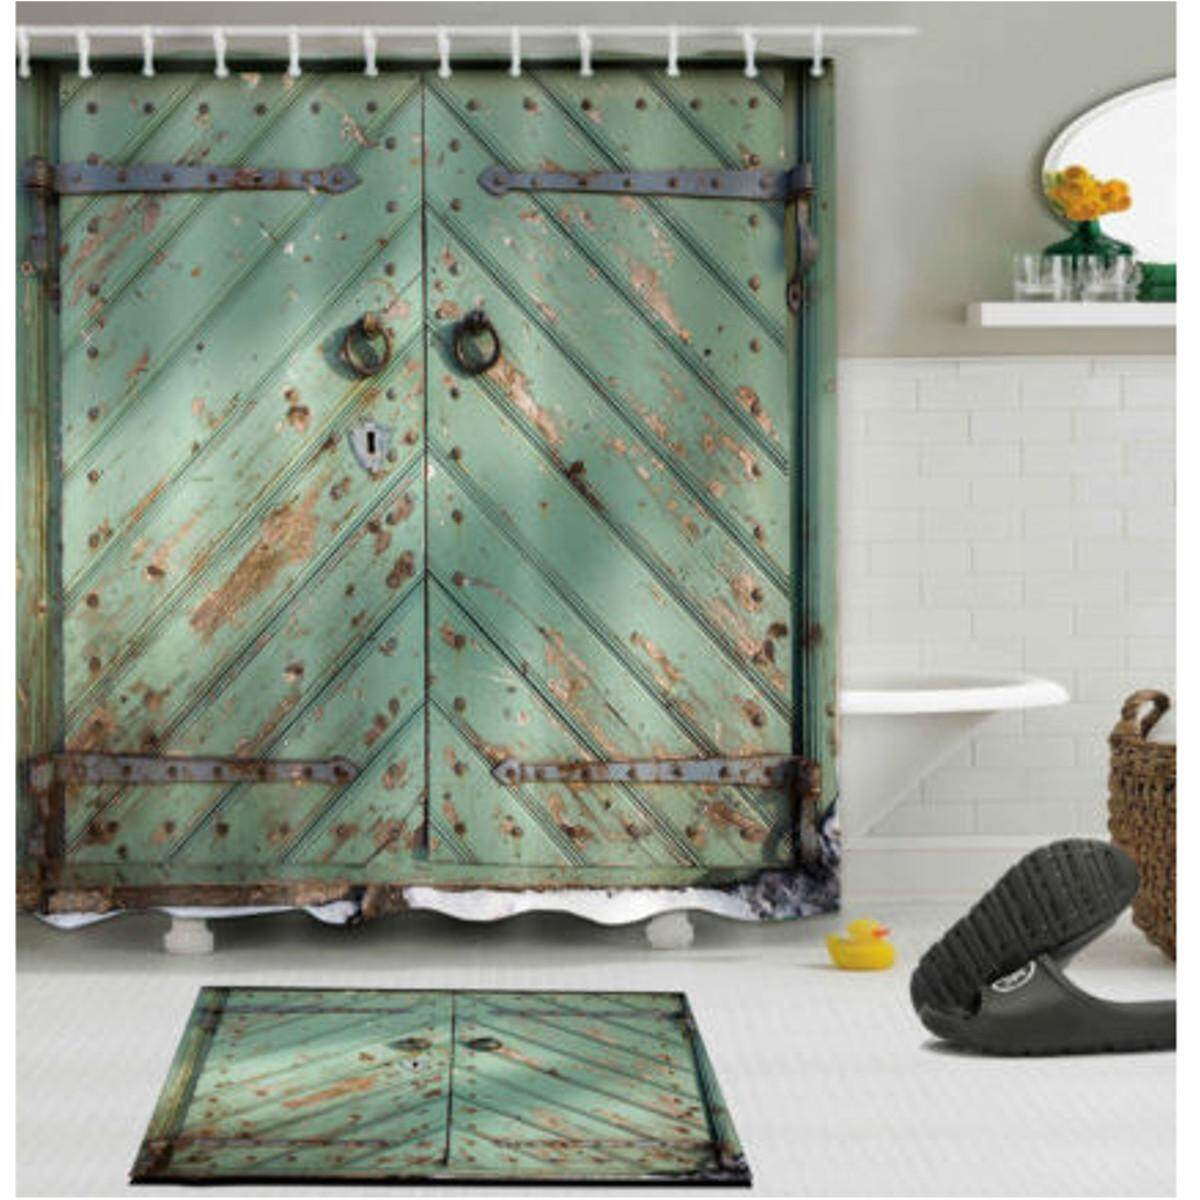 180cm X 180cm Rustic Wooden Barn Door Shower Curtain Bathroom Decor Waterproof Fabric By Glimmer.